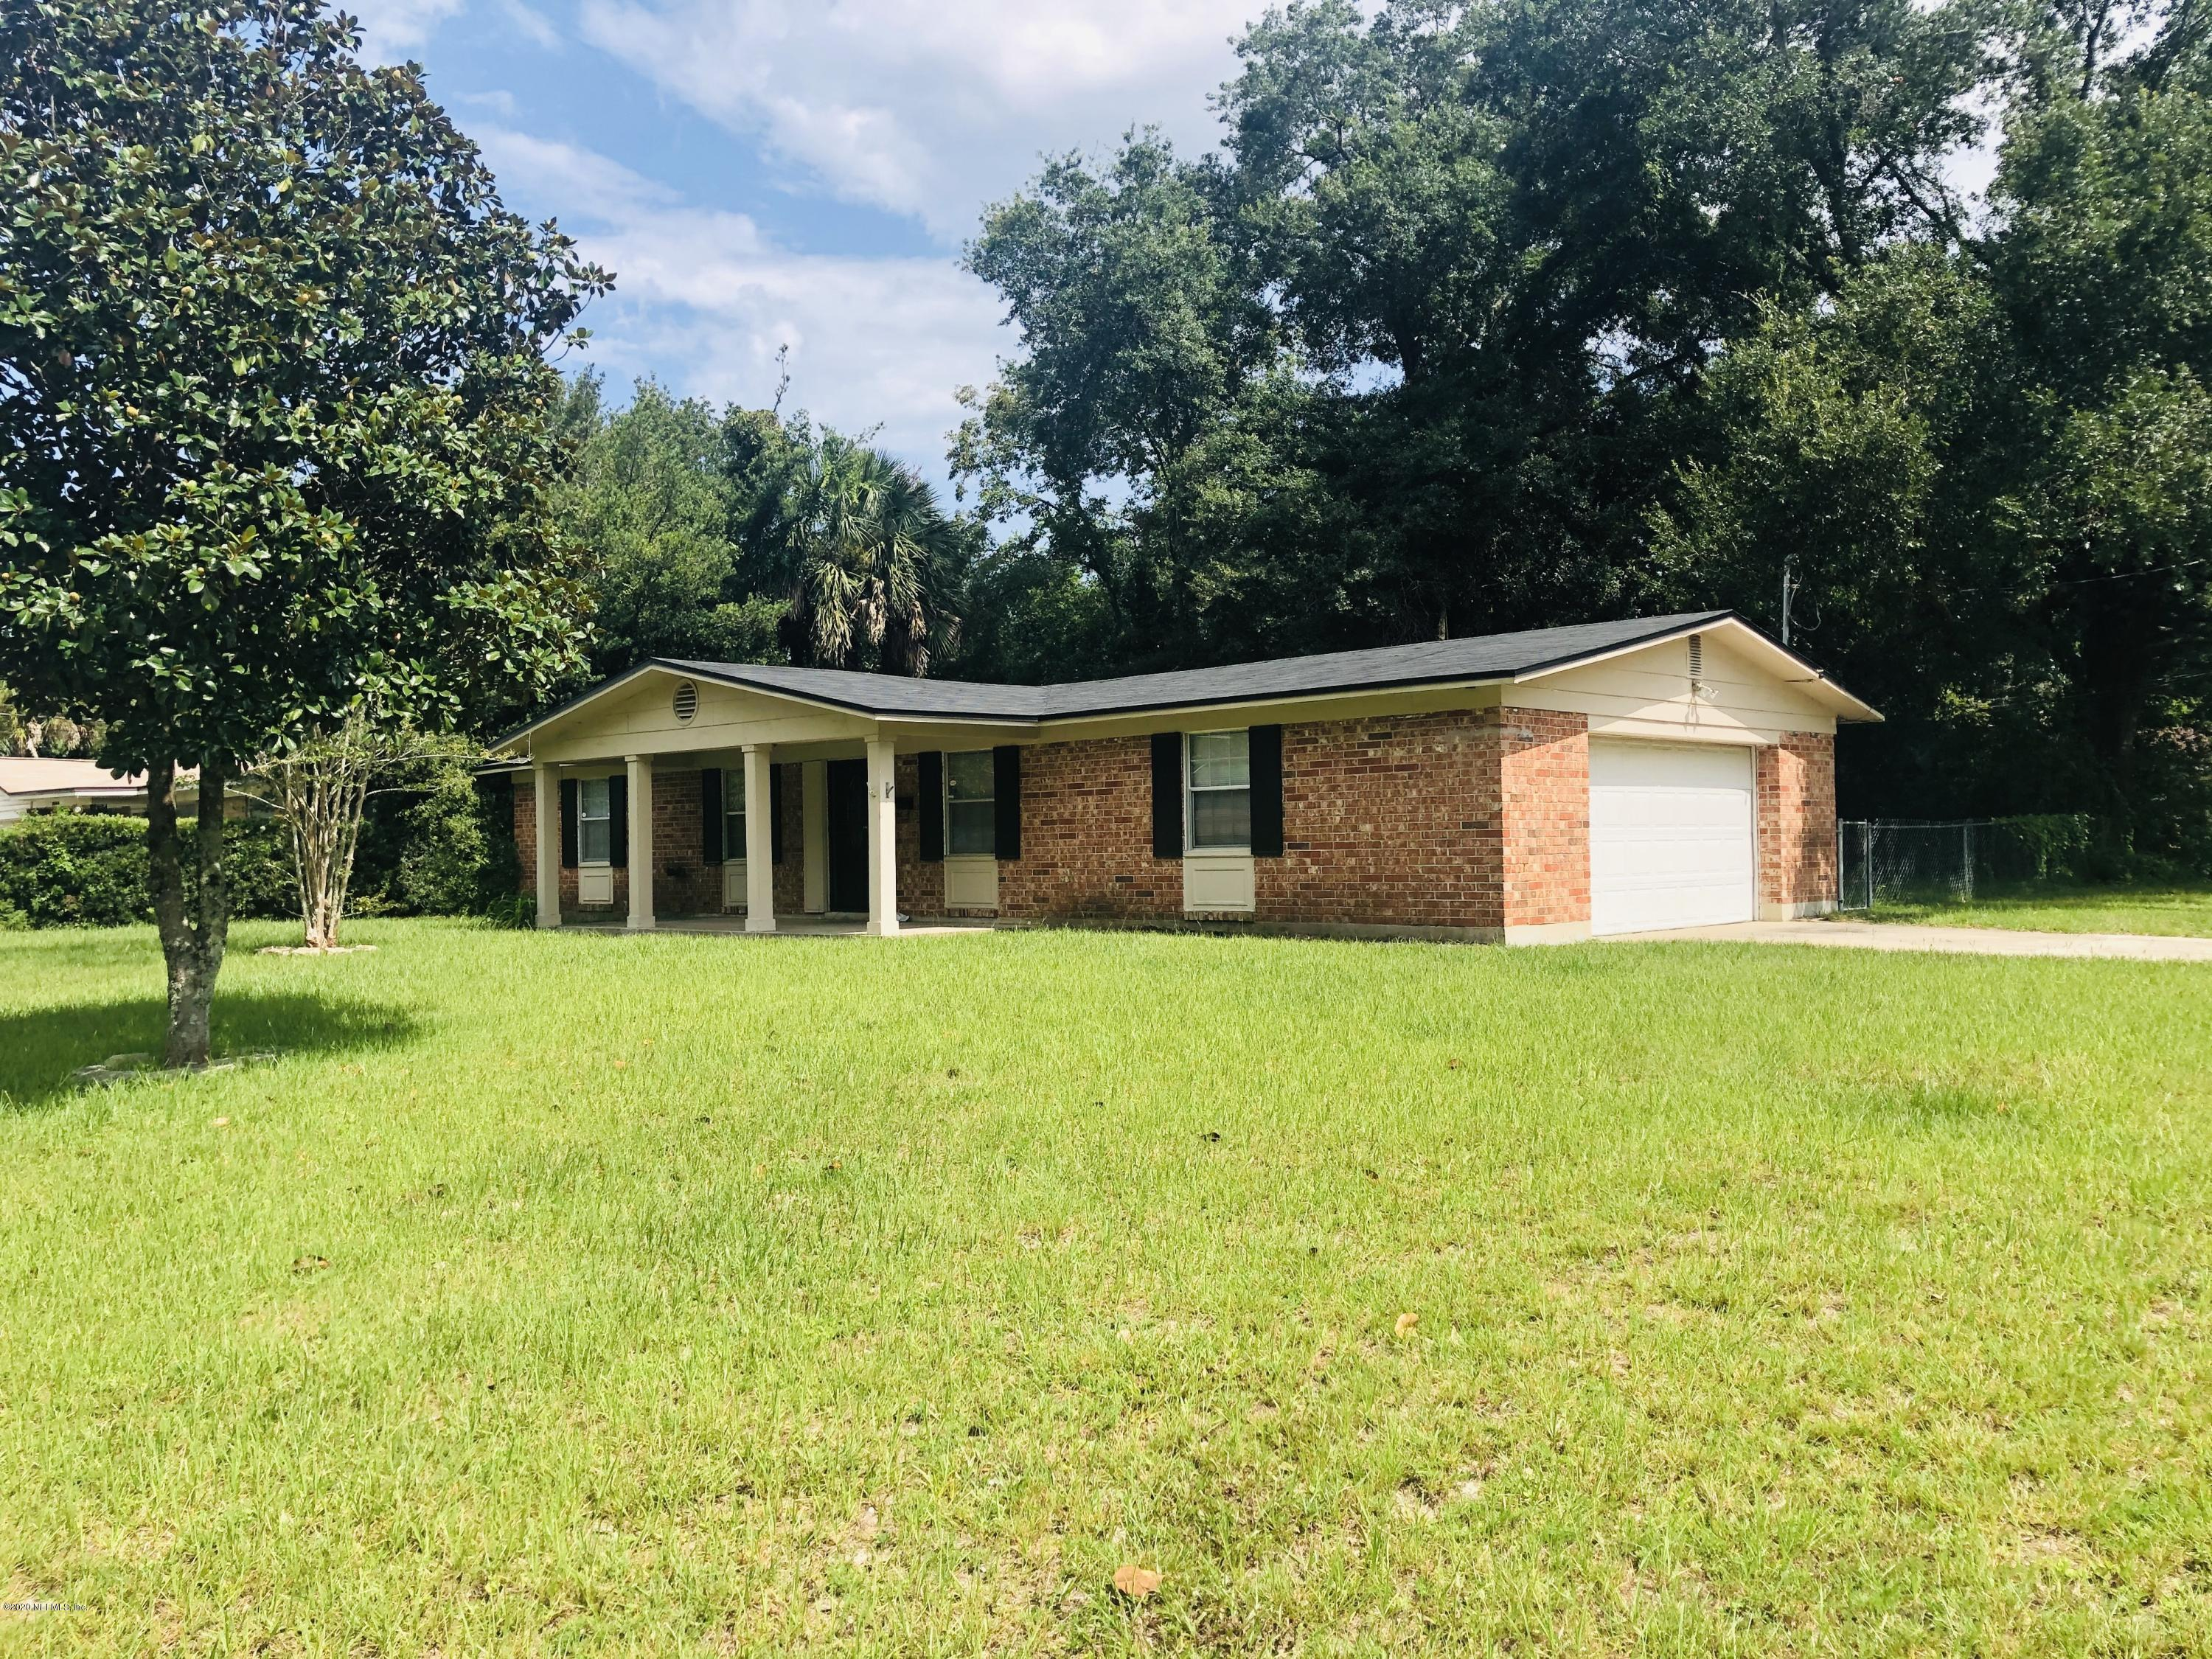 1016 BACALL, JACKSONVILLE, FLORIDA 32218, 3 Bedrooms Bedrooms, ,2 BathroomsBathrooms,Investment / MultiFamily,For sale,BACALL,1066306